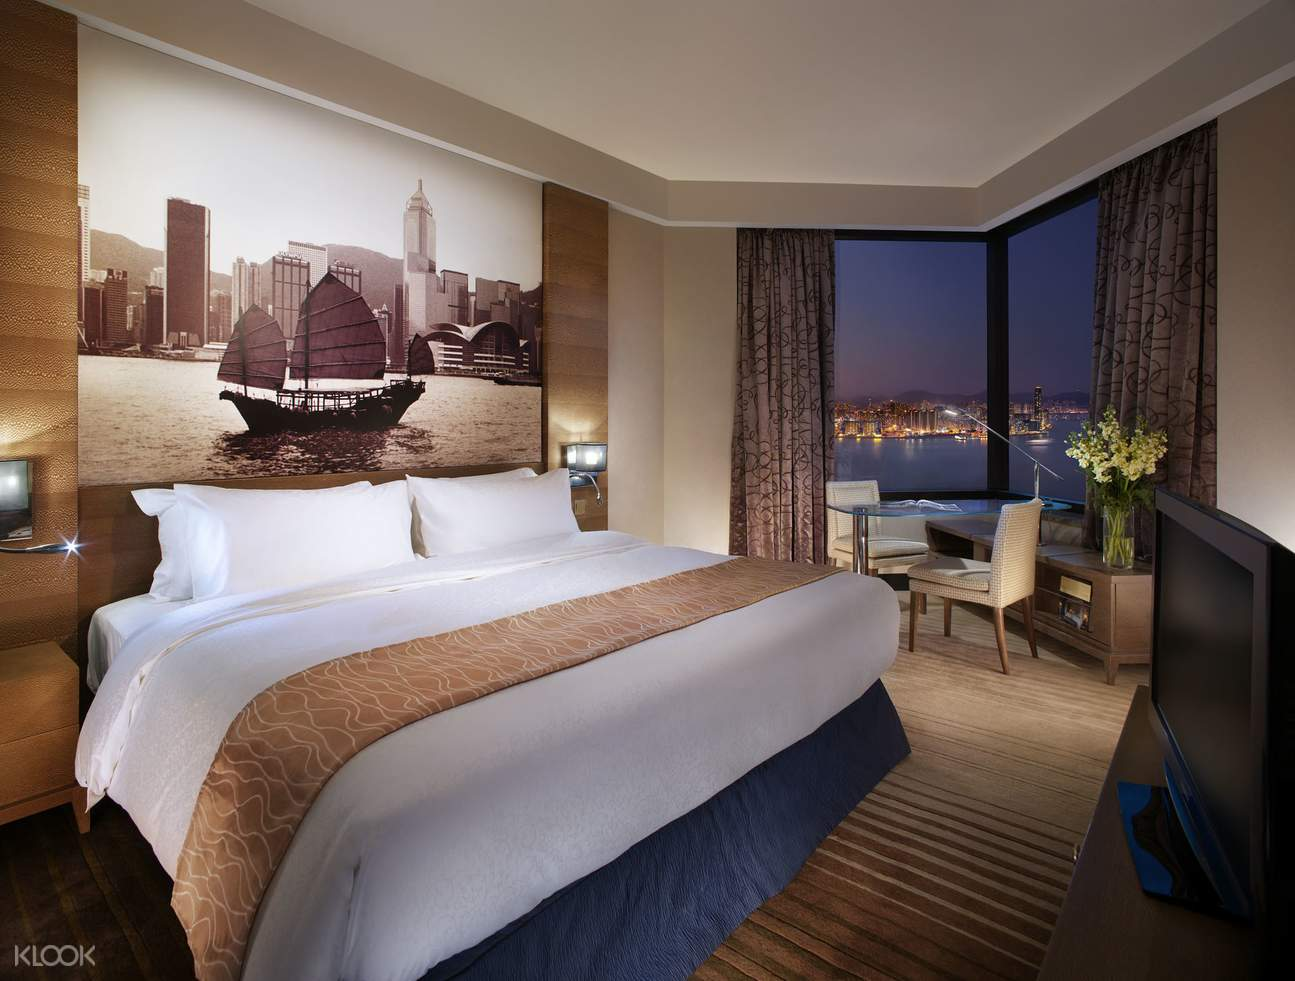 inside the Deluxe Harbour view room at Harbour Grand Hong Kong